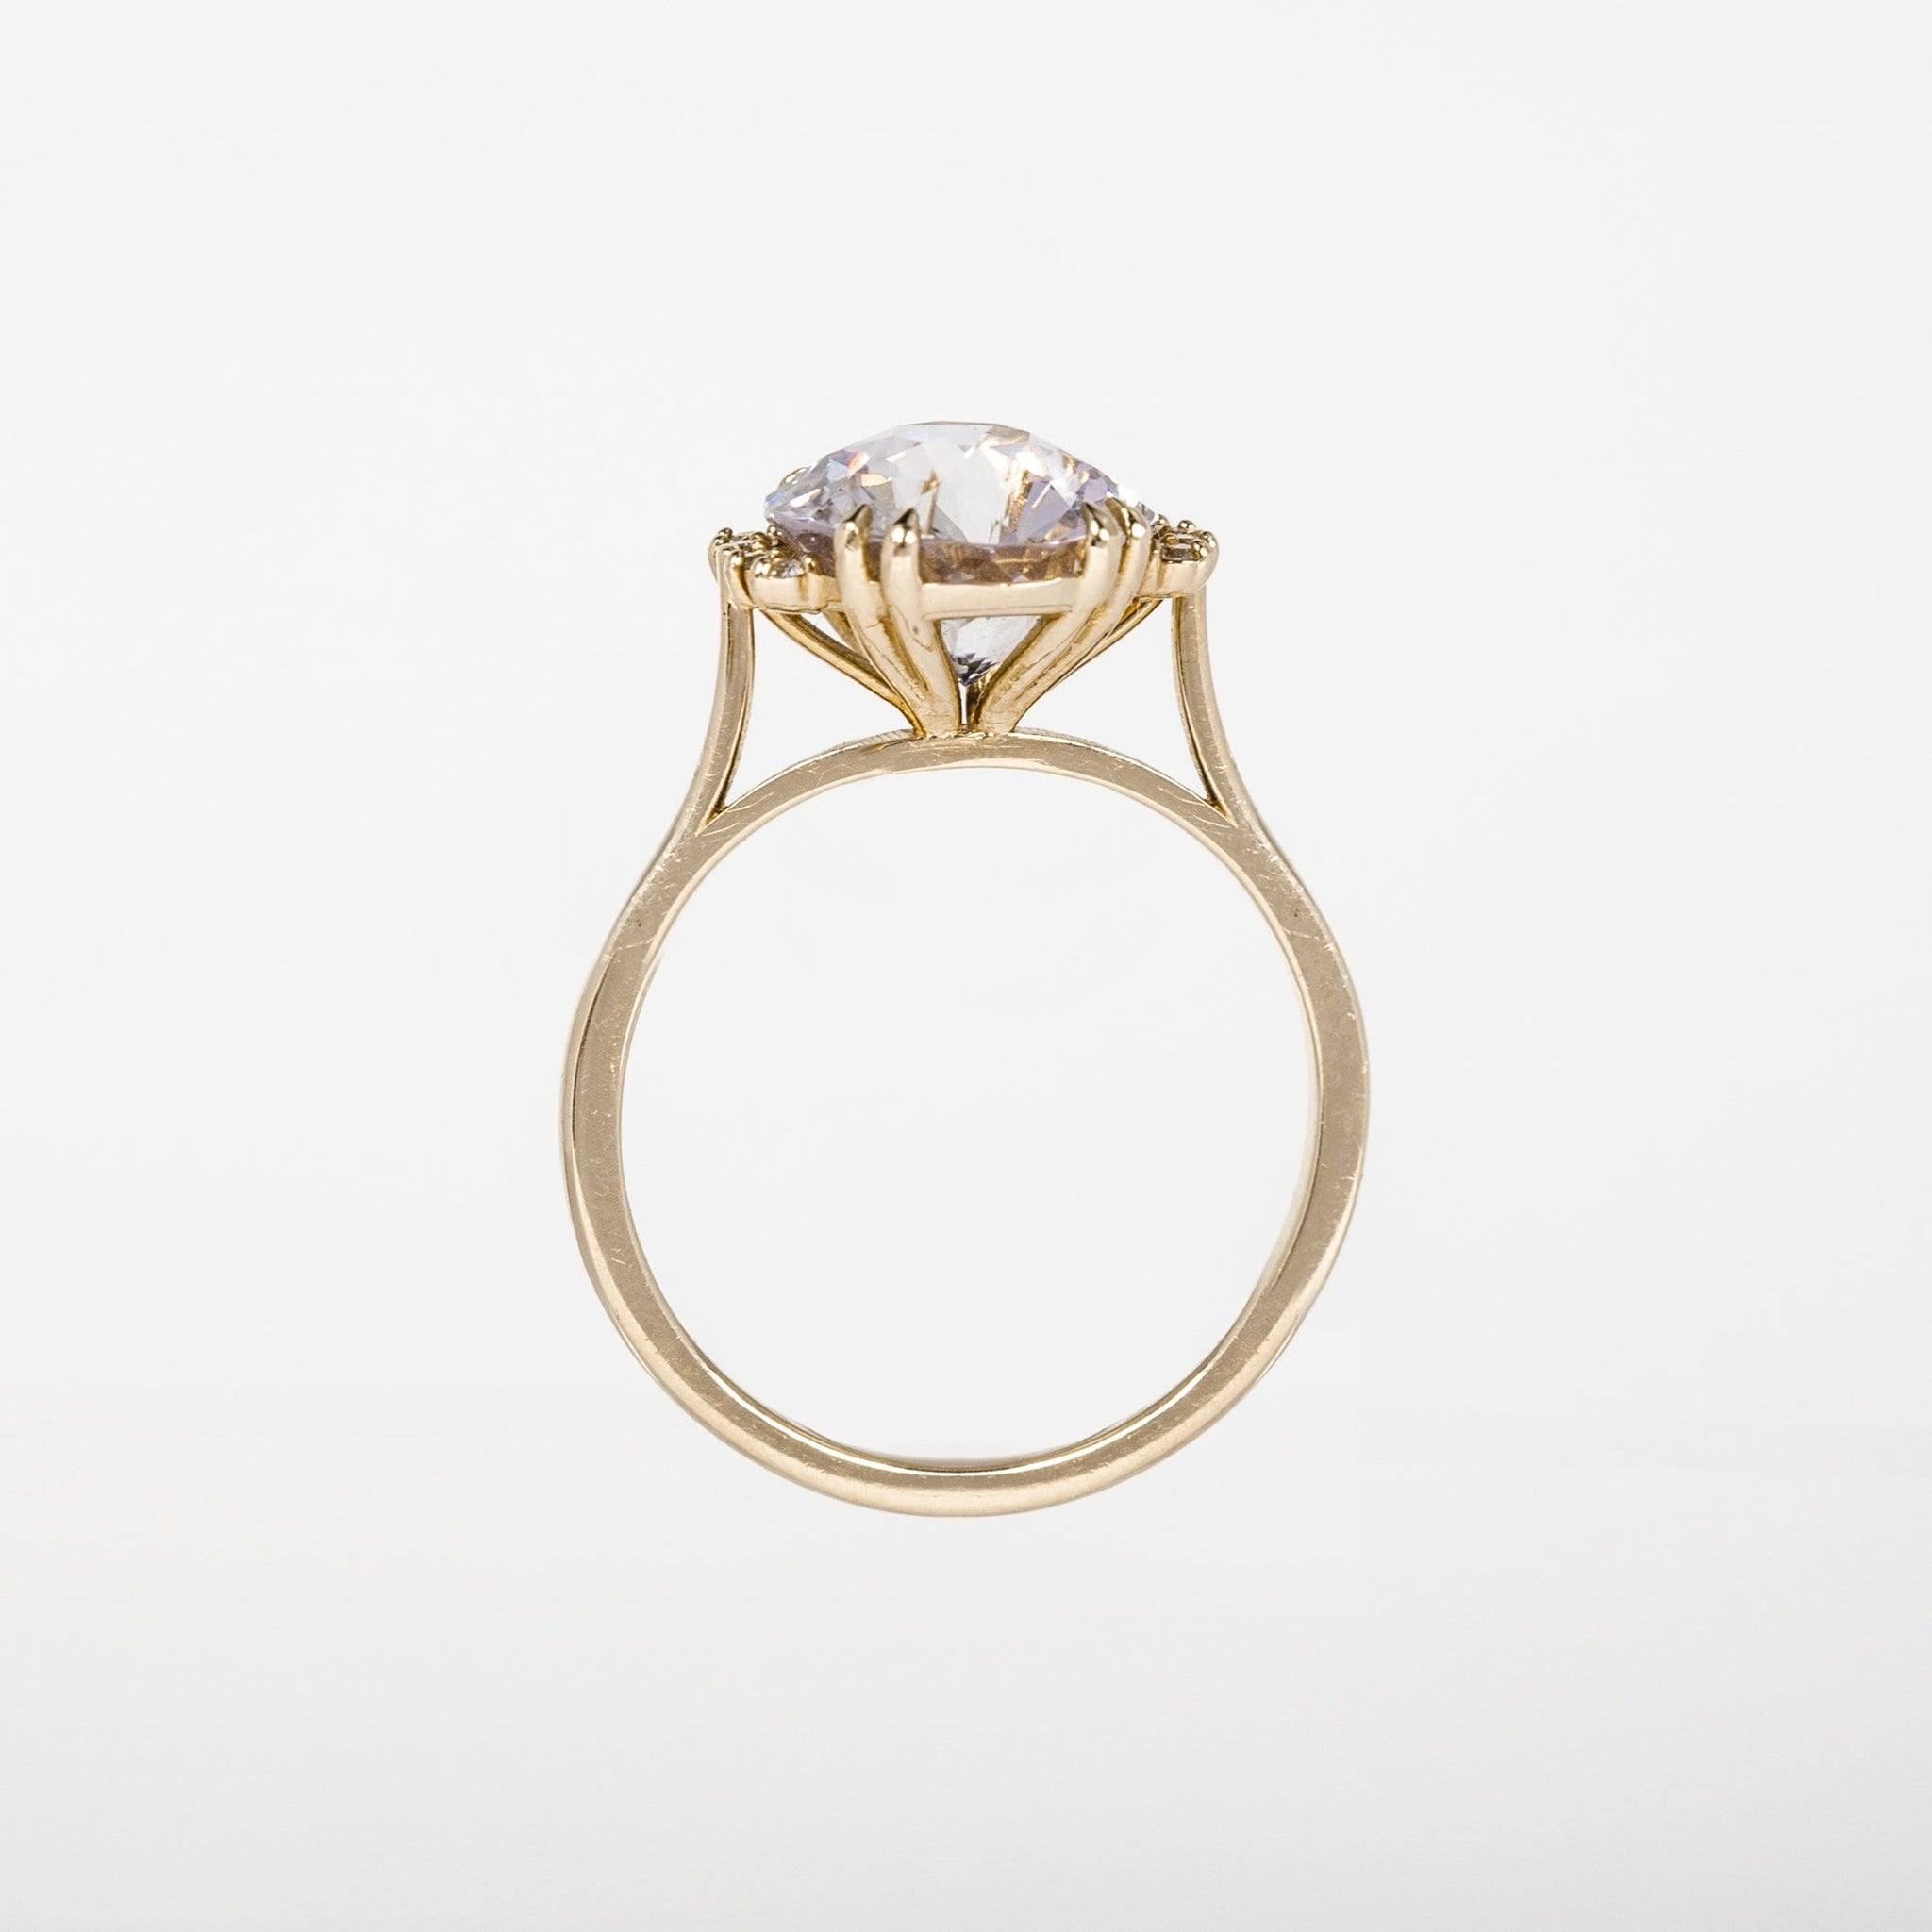 One of A Kind Ocean Mist Ring - 14k Yellow Gold, Pink Sapphire, White Diamond